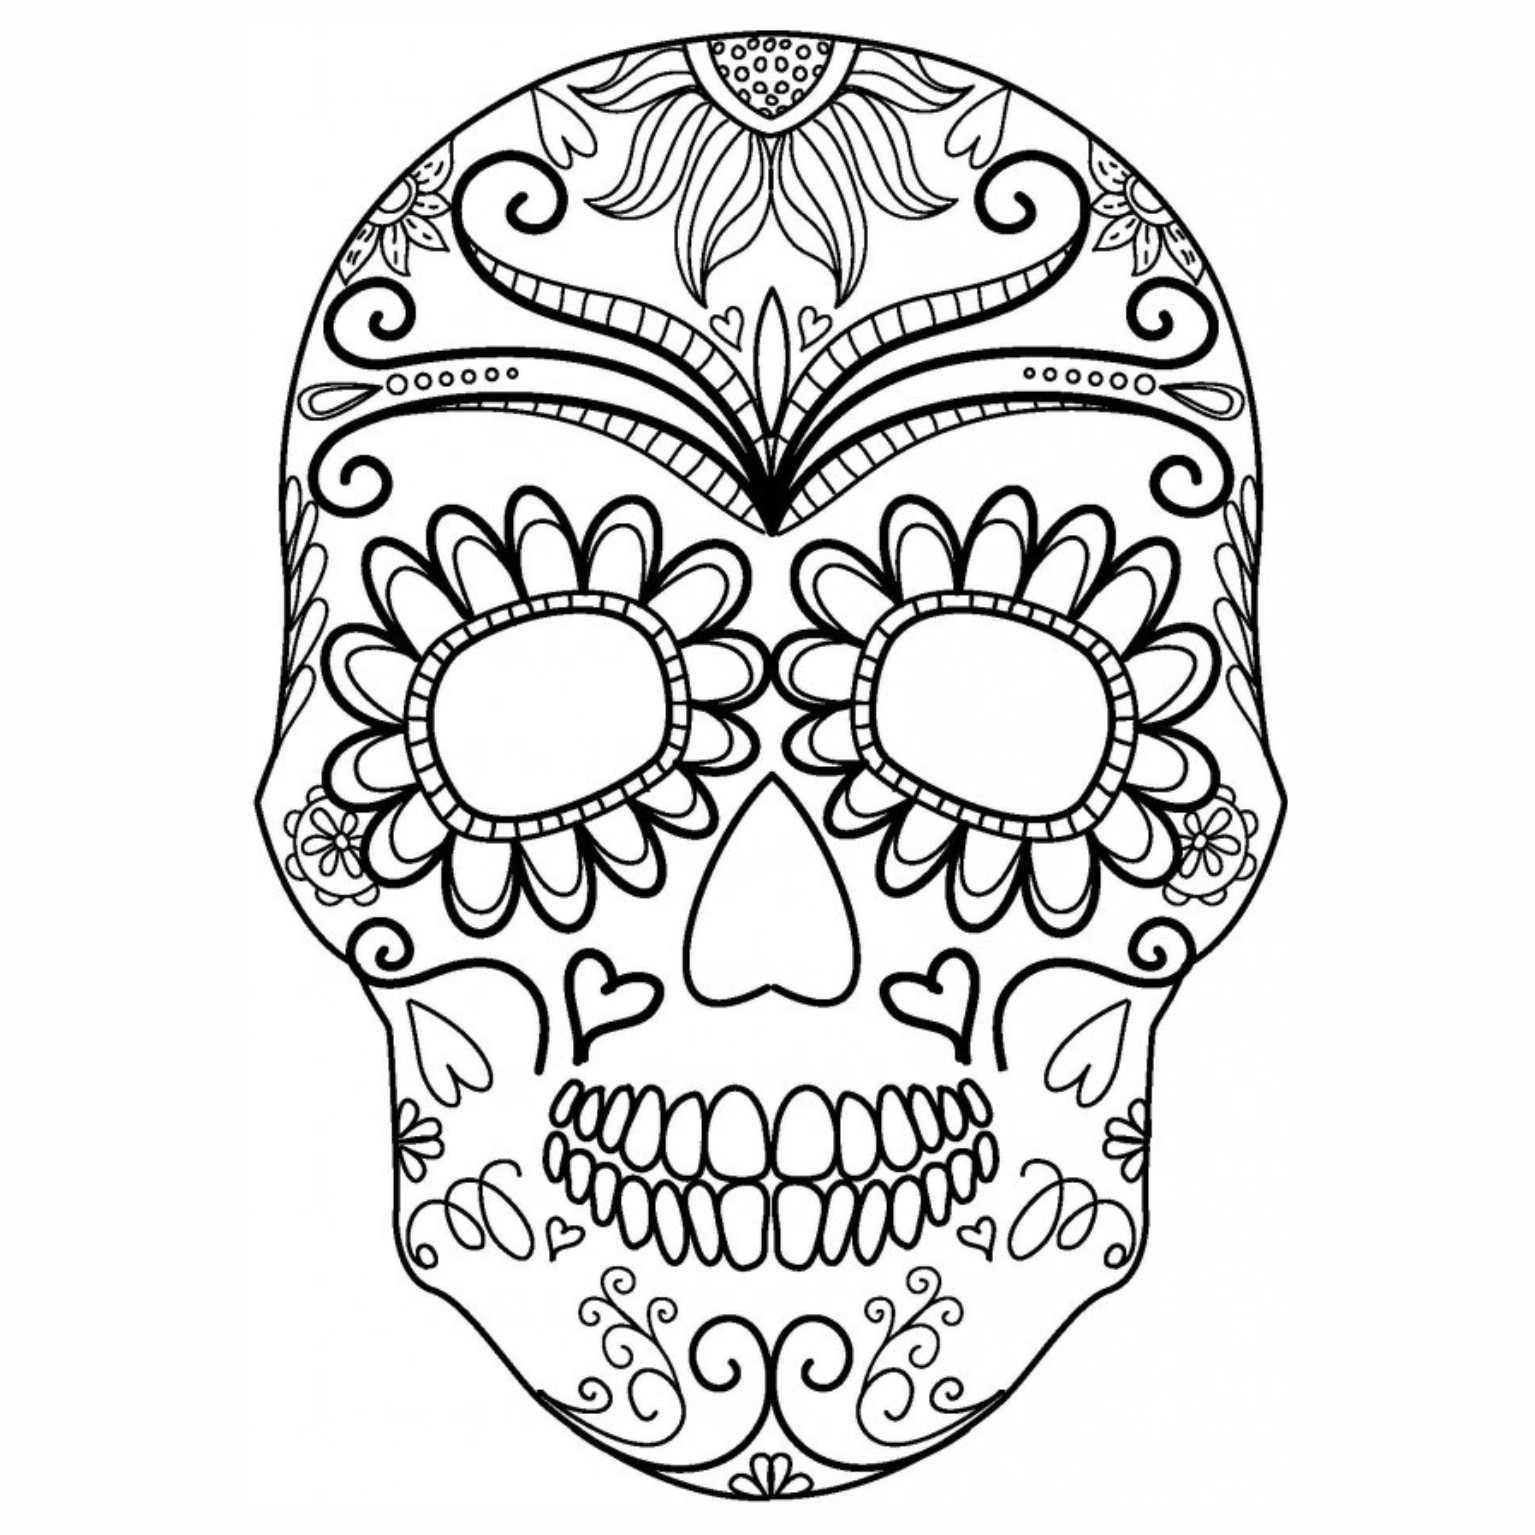 sugar skull template dia de los muertos day of the dead sugar skull silhouette skull sugar template